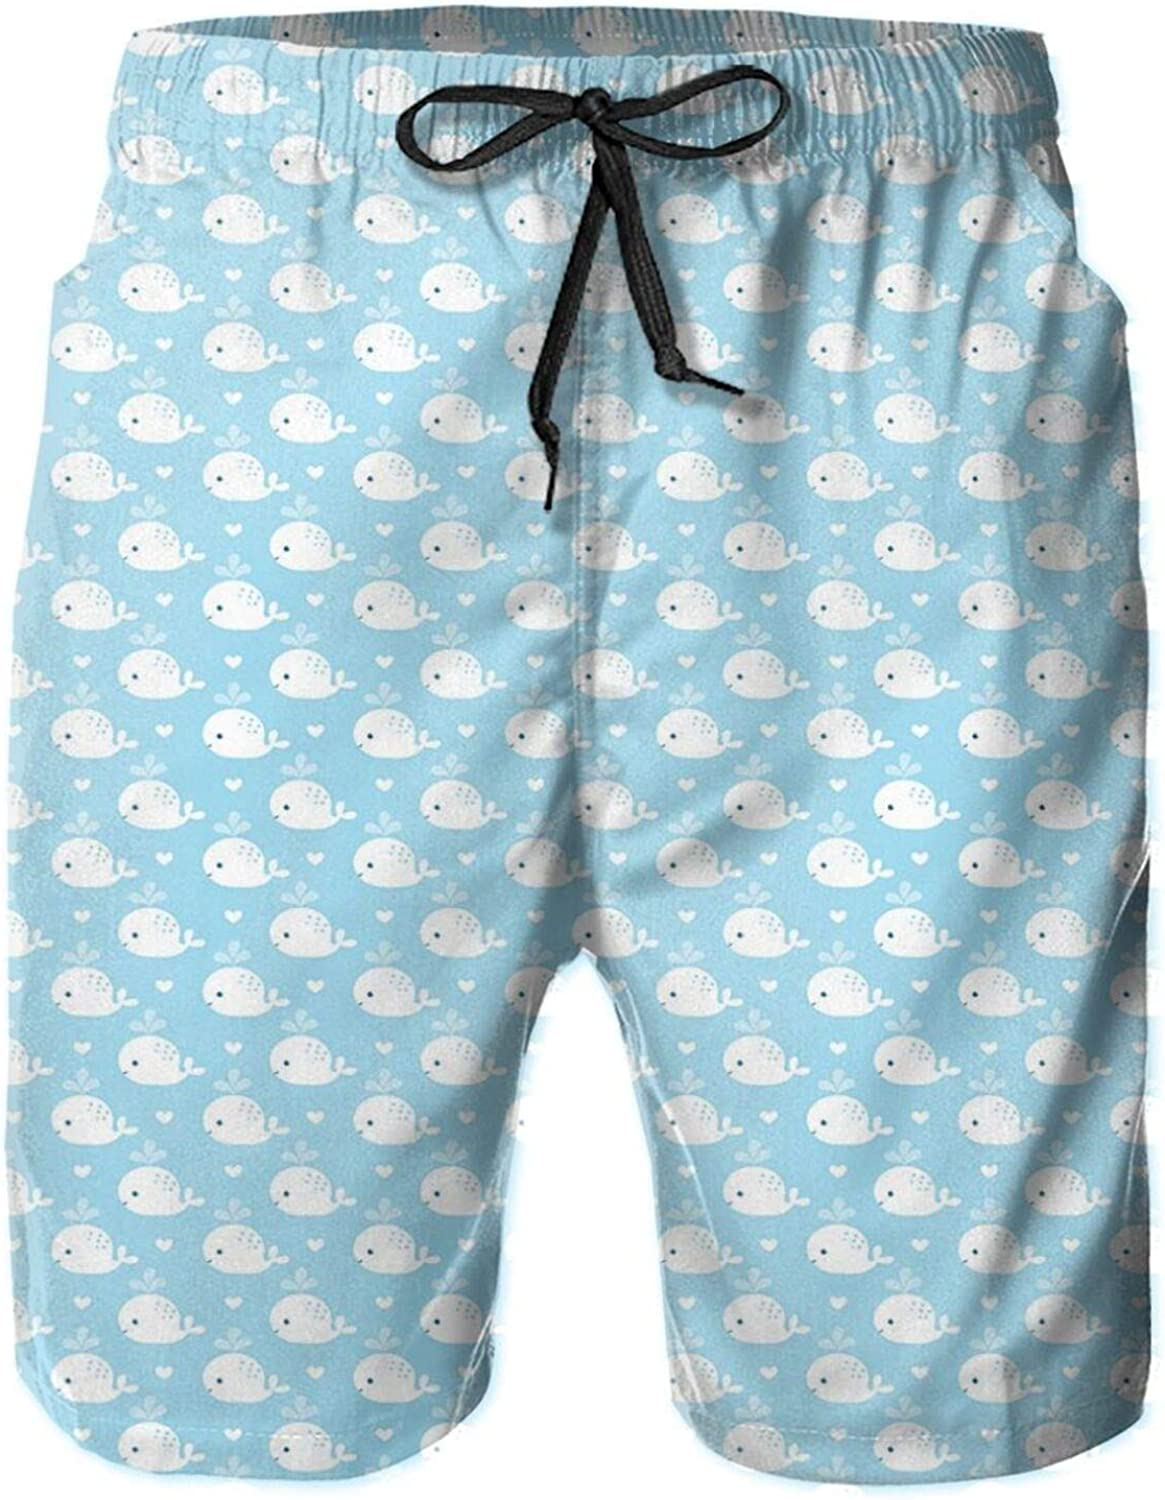 Young Marine Animals Squirting Water with Little White Hearts Baby Shower Design Drawstring Waist Beach Shorts for Men Swim Trucks Board Shorts with Mesh Lining,L